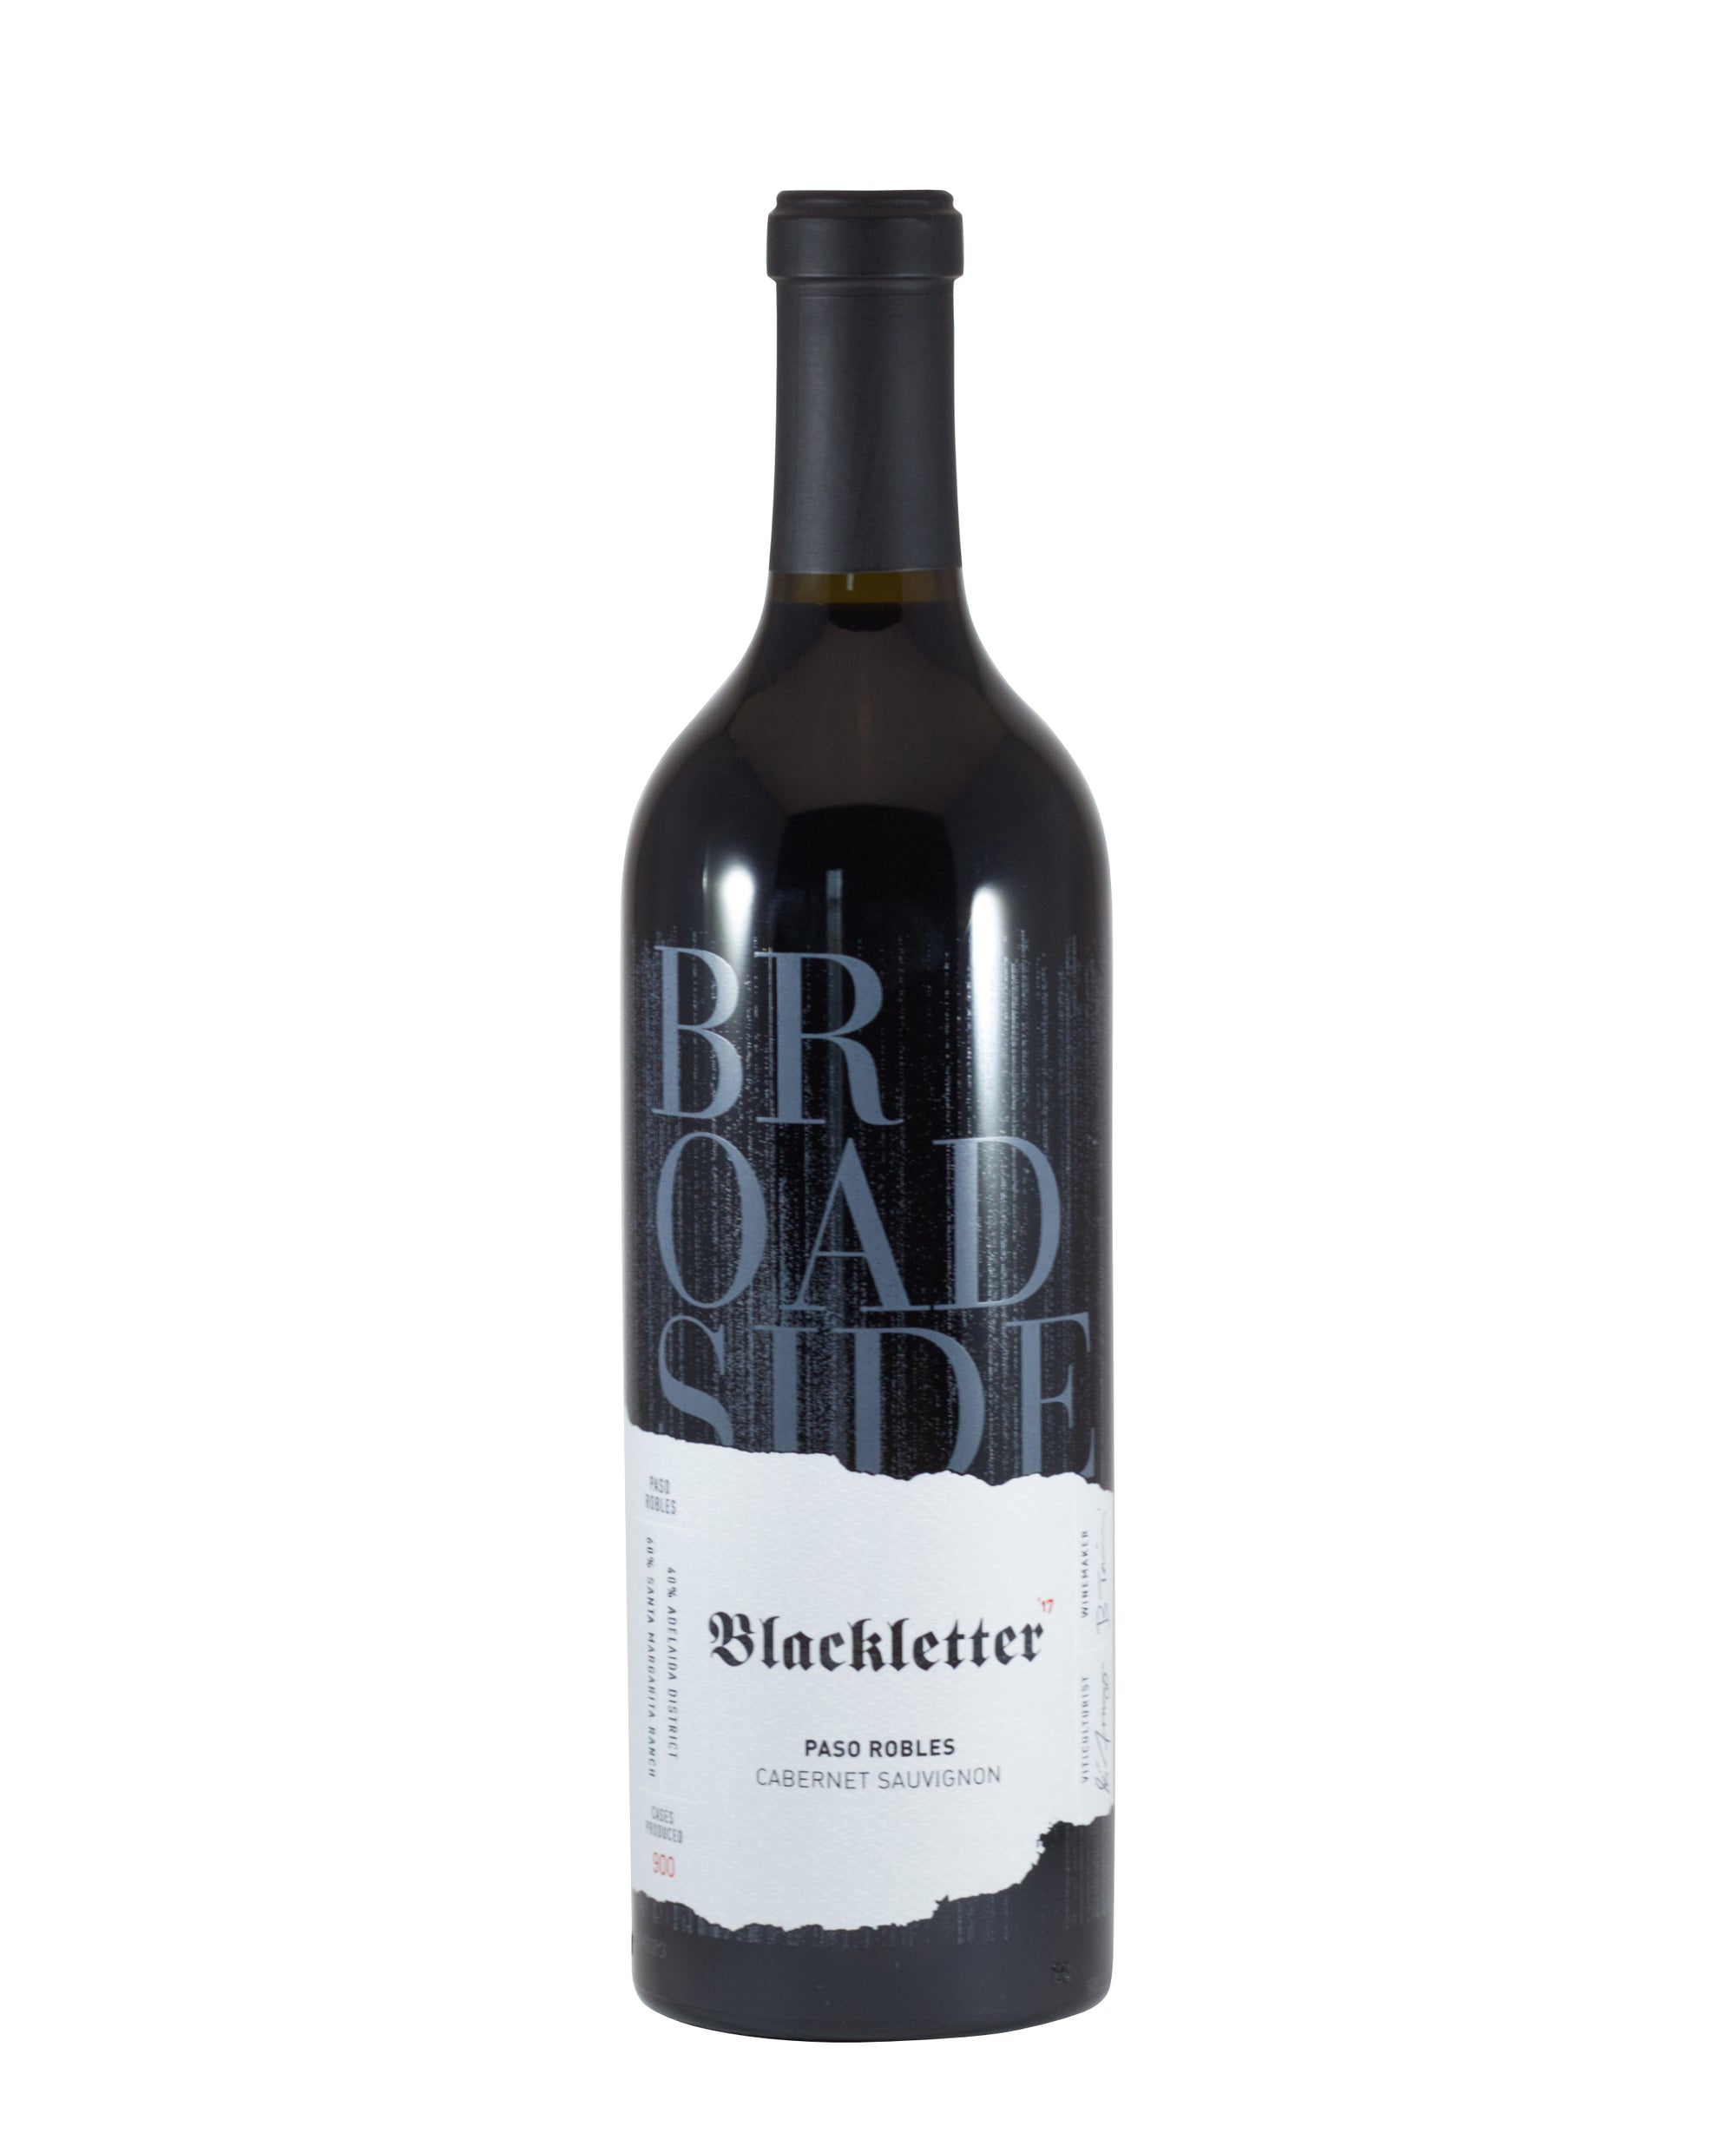 "*9R* Broadside ""Single Vineyard Blackletter"" Cabernet Sauvignon (Paso Robles, CA)"